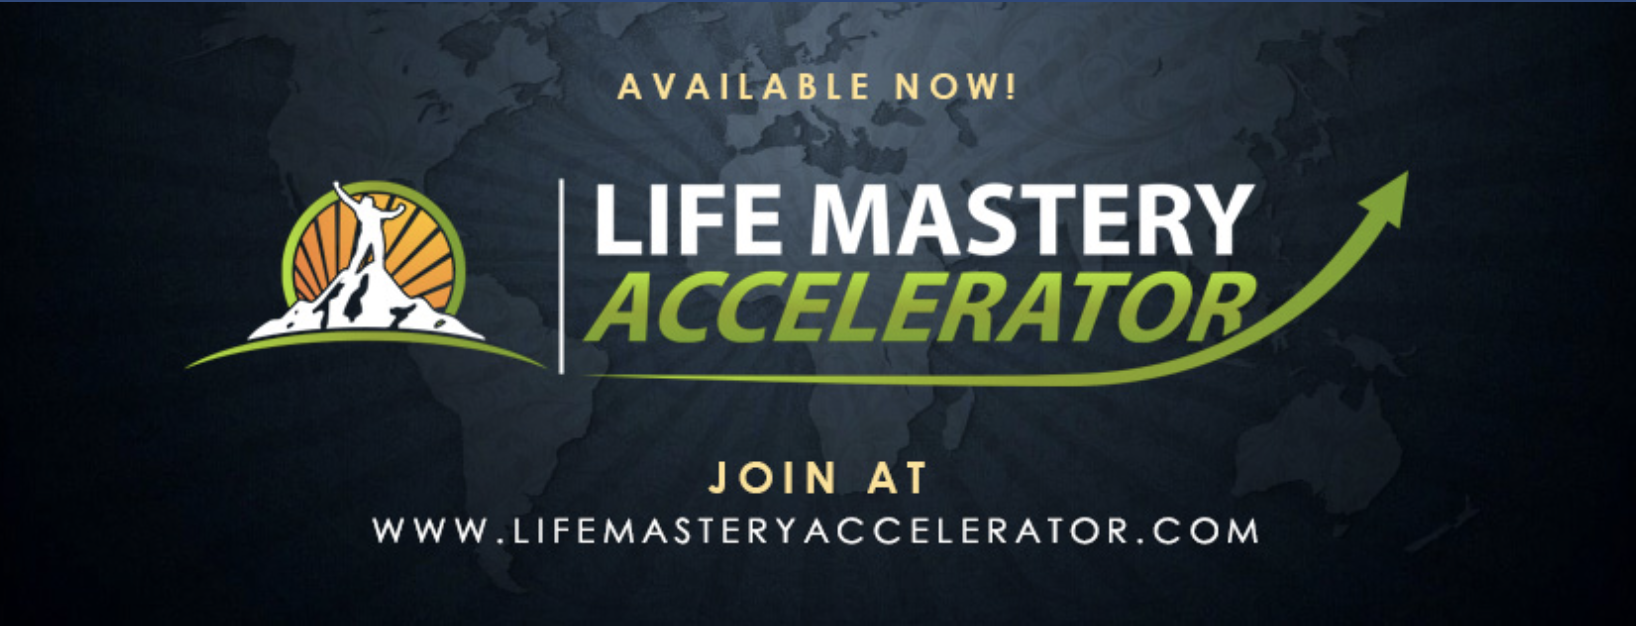 Project Life Mastery Facebook Page Image